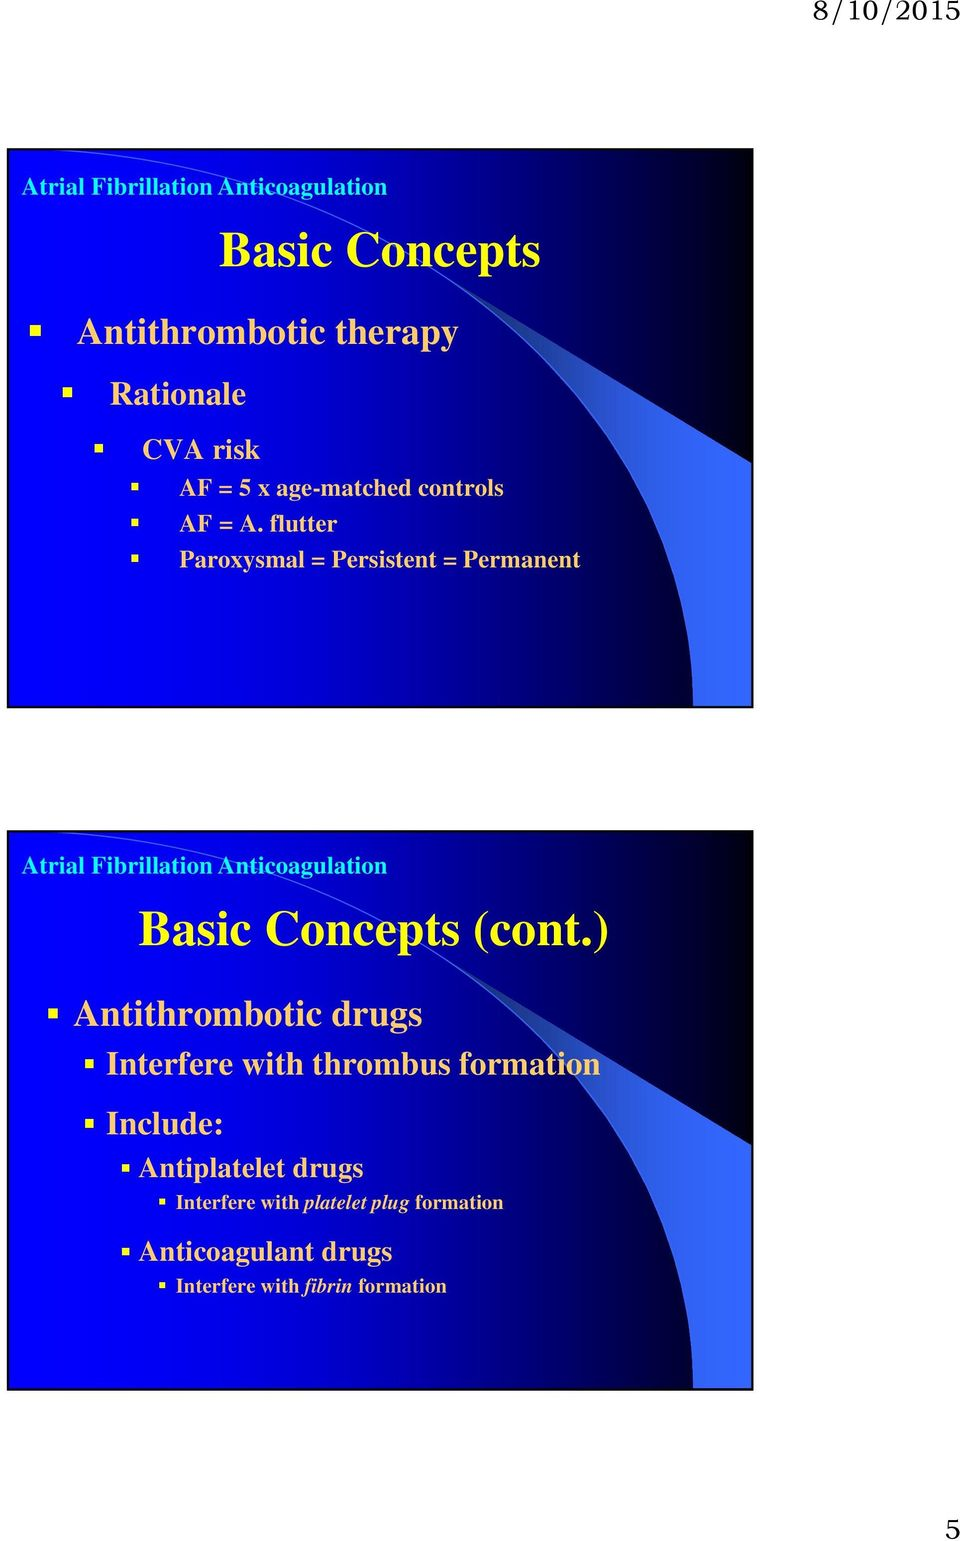 ) Antithrombotic drugs Interfere with thrombus formation Include: Antiplatelet drugs